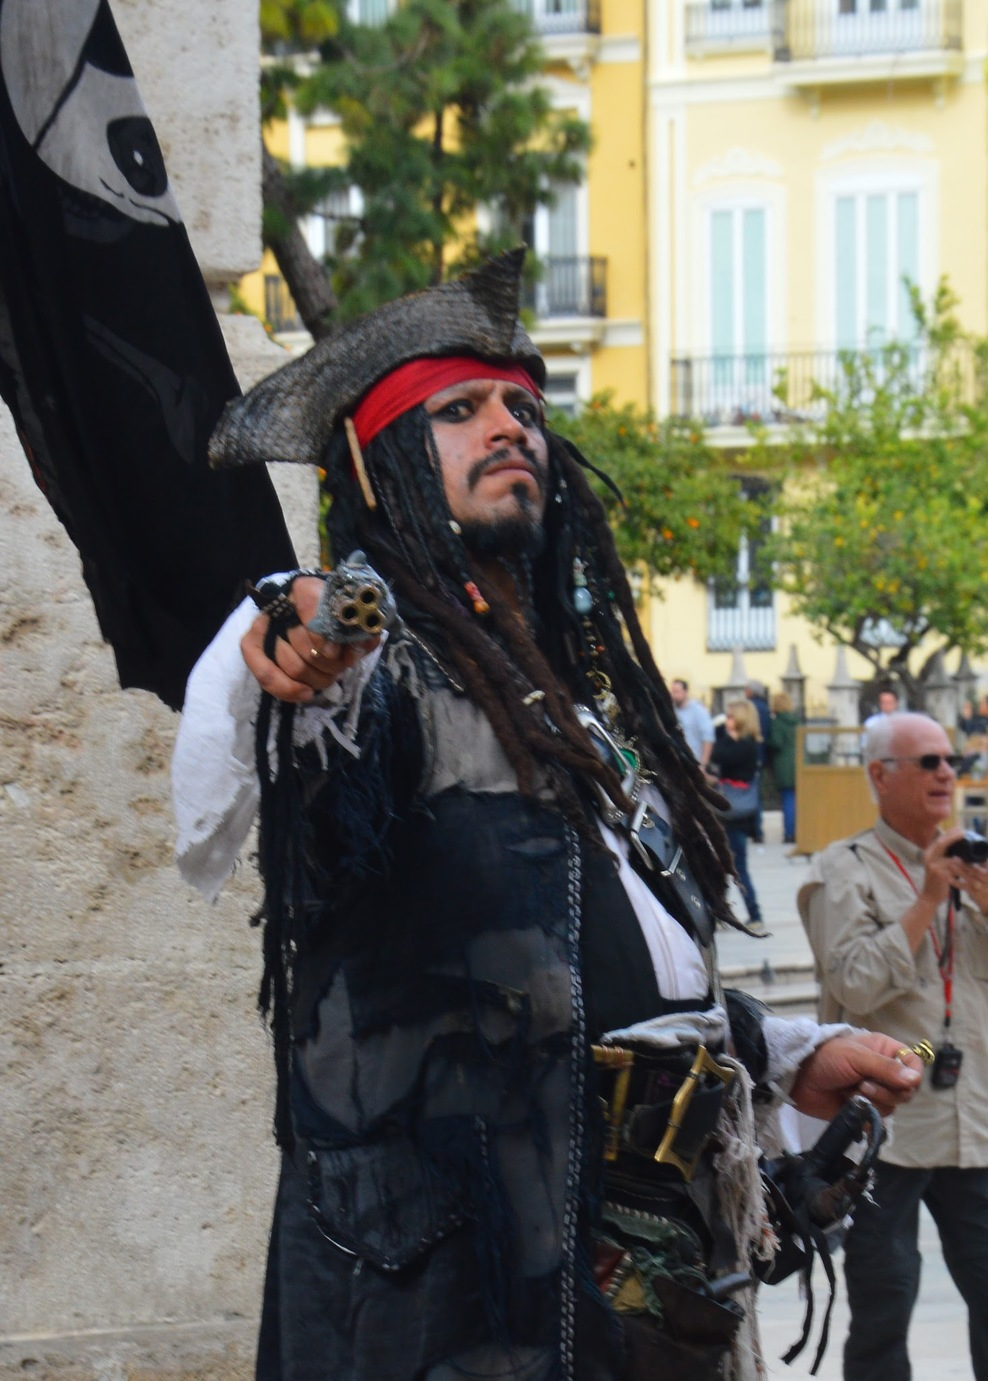 Street performer in Valencia